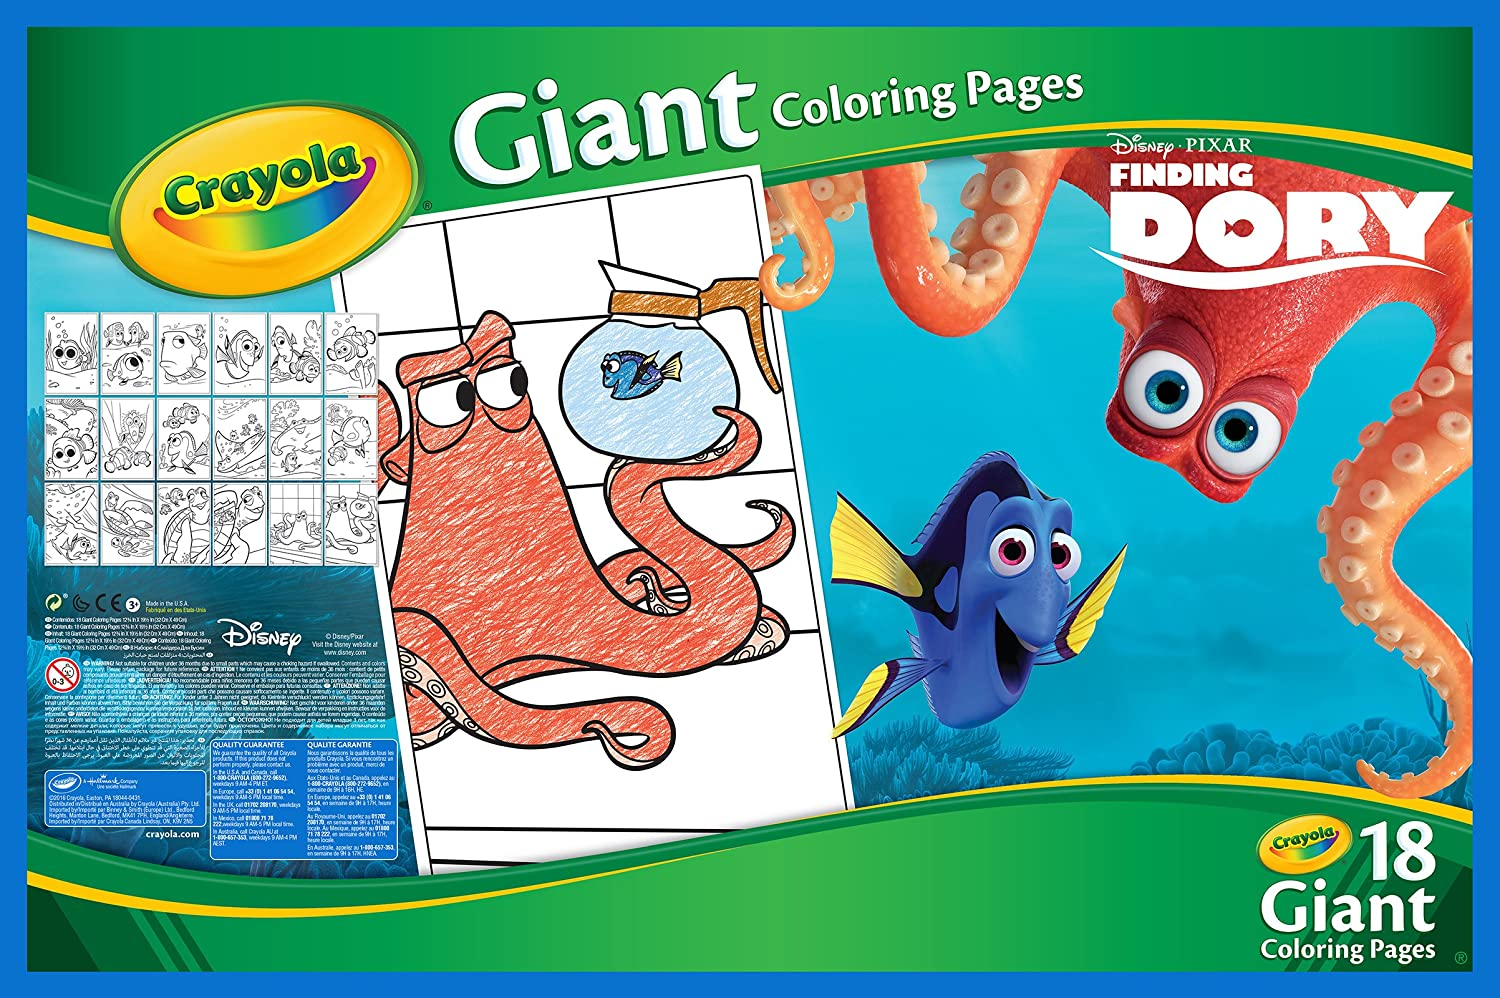 Amazon.com: Crayola Finding Dory Giant Coloring Pages: Toys & Games